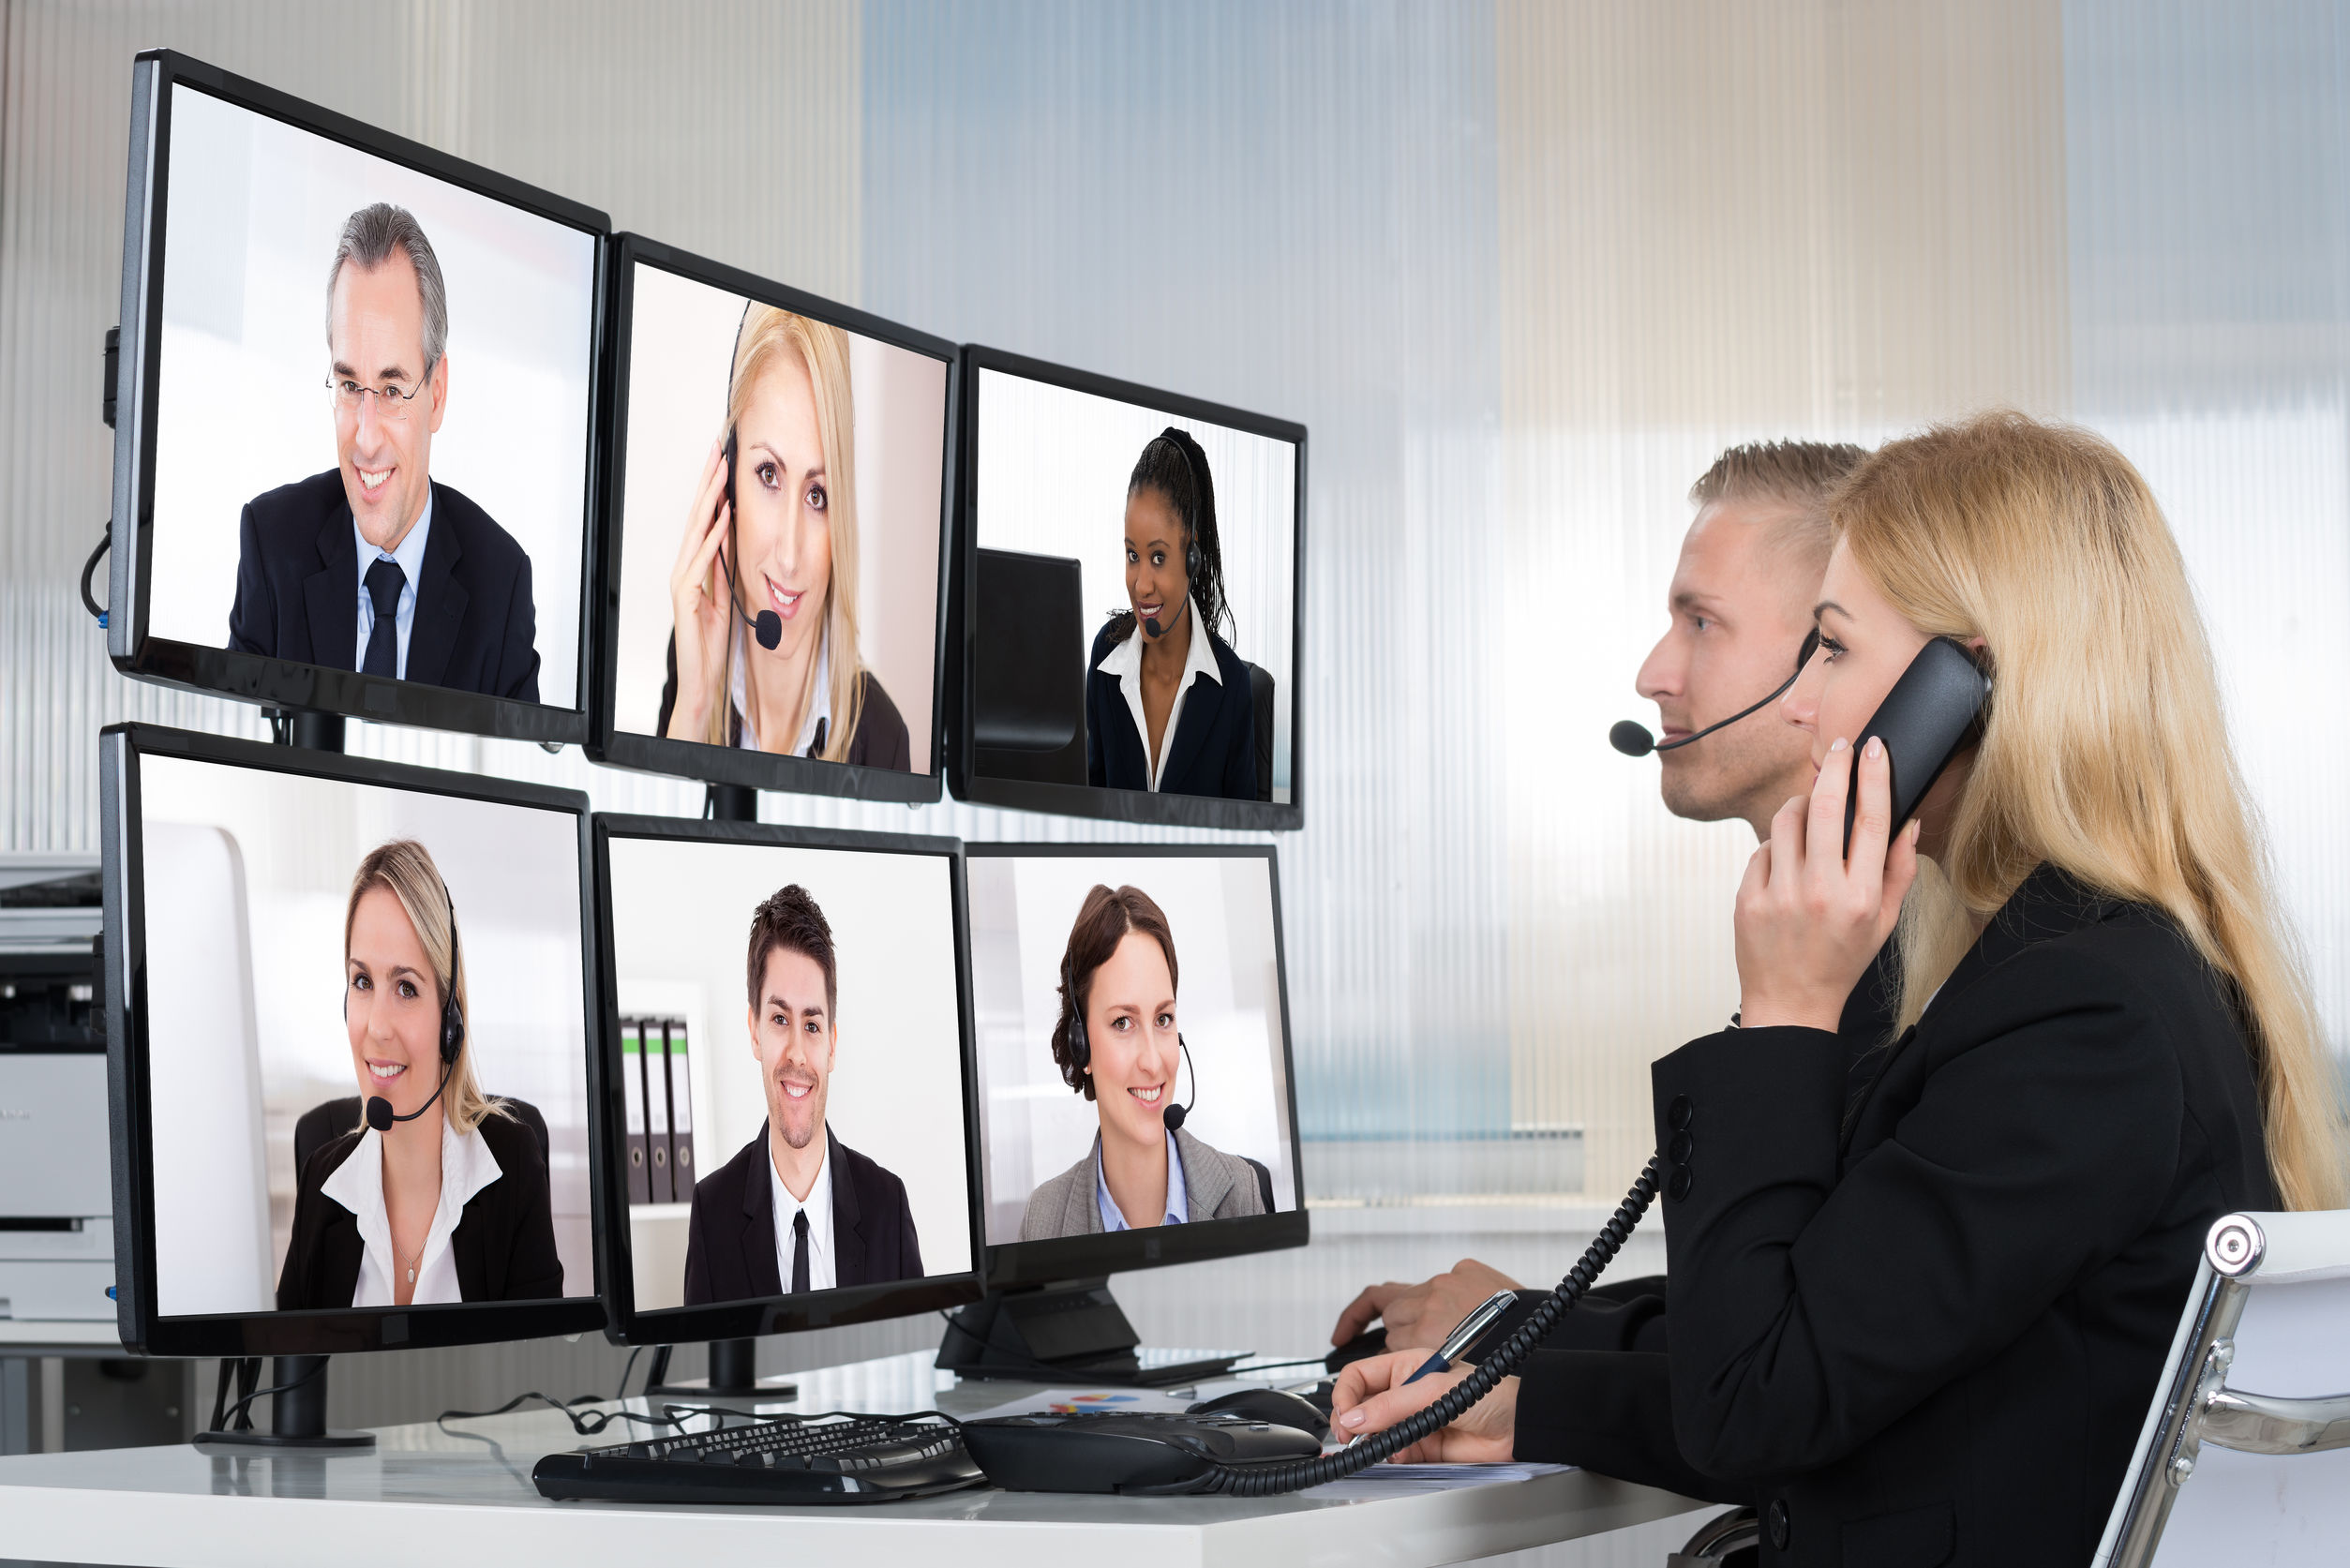 50245633 - business people having conference call with multiple computer screens at table in office